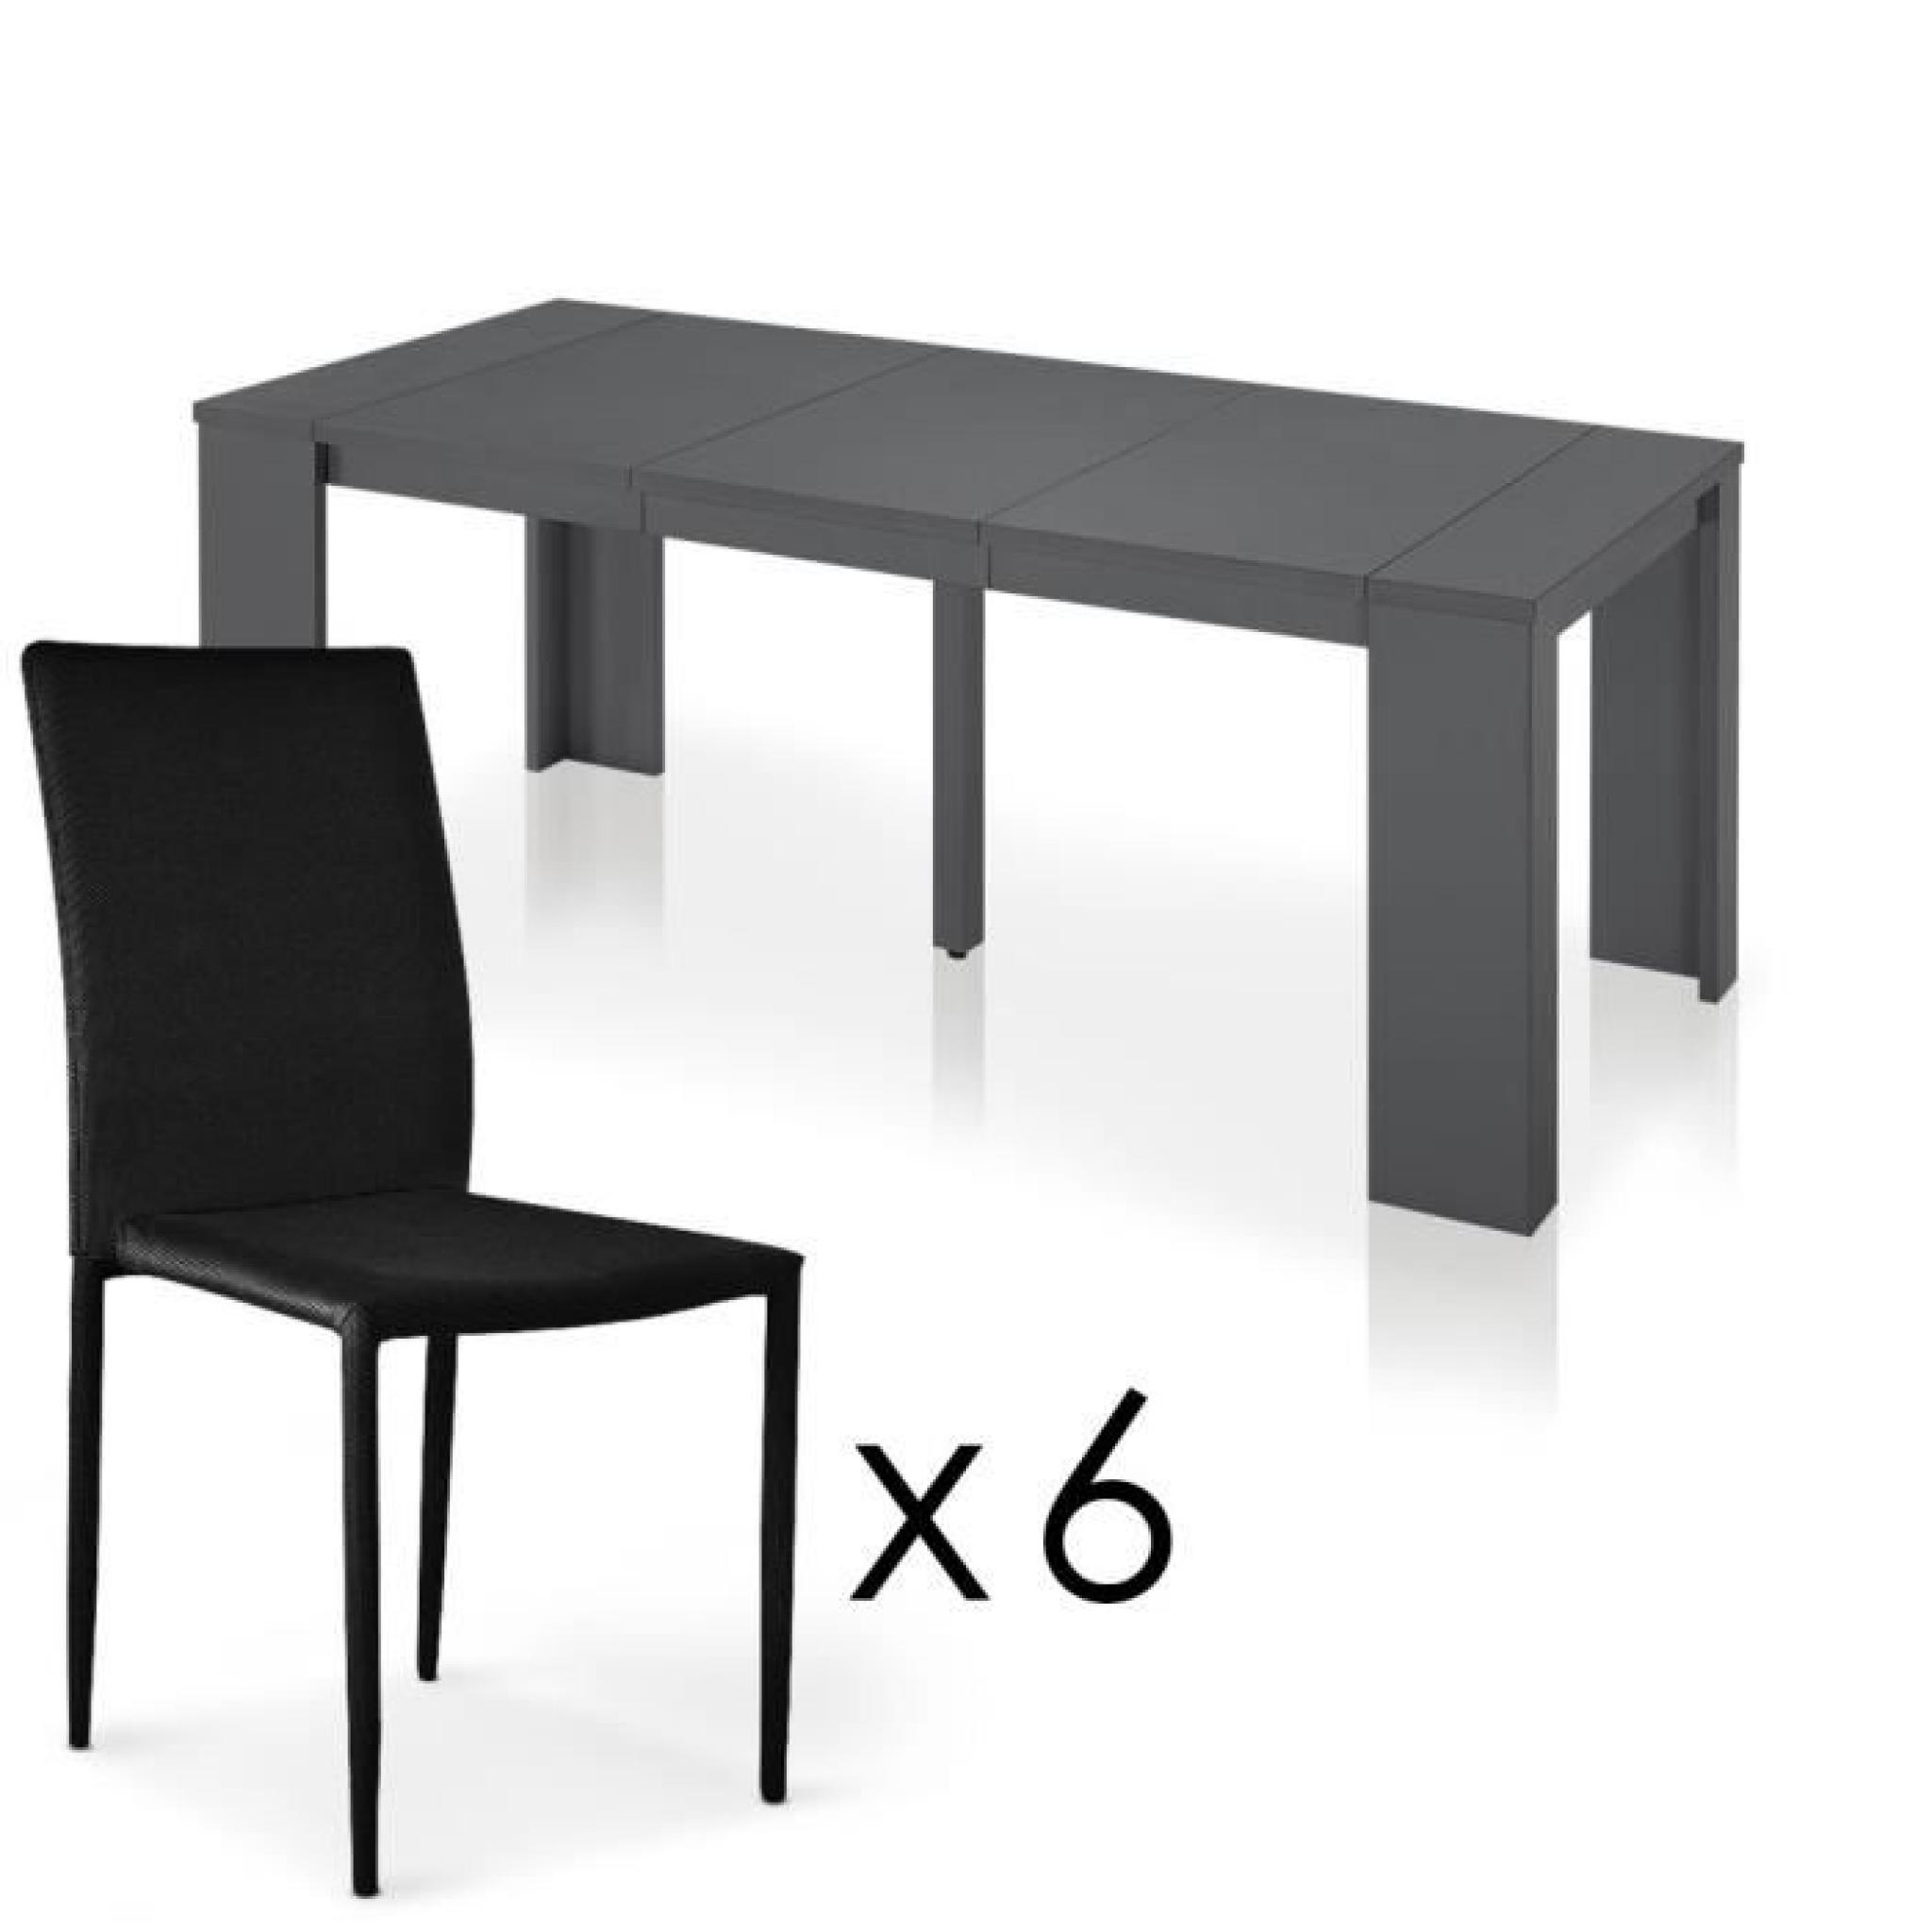 brookline gris 6 chaises empilables modan noir achat vente table salle a manger pas cher. Black Bedroom Furniture Sets. Home Design Ideas